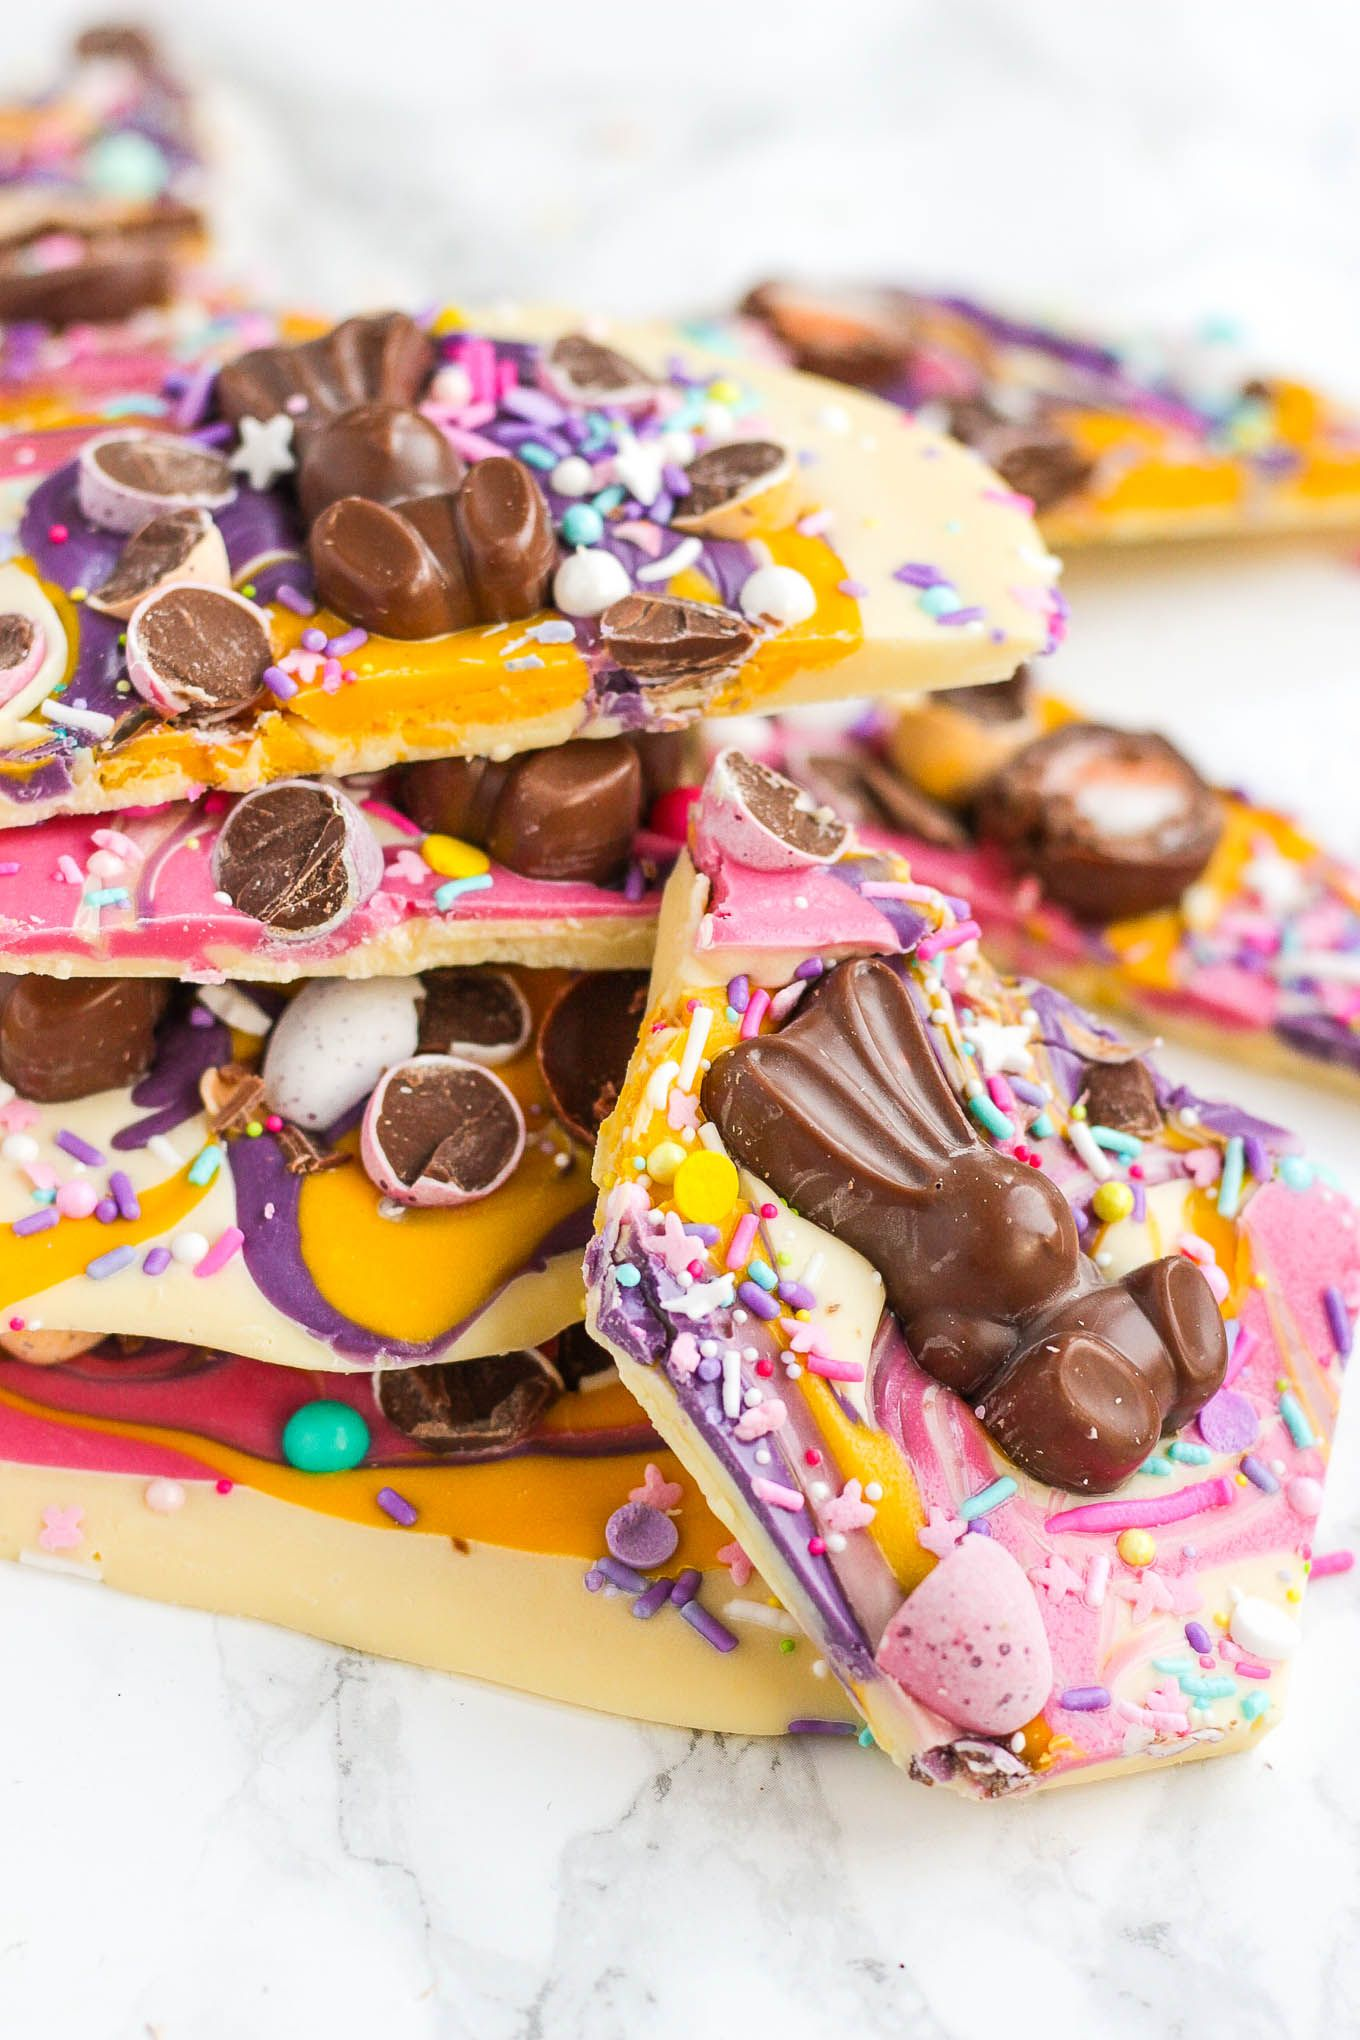 Chocolate easter bark with candy malteaster bunnies recipe chocolate easter bark with candy malteaster bunnies negle Image collections